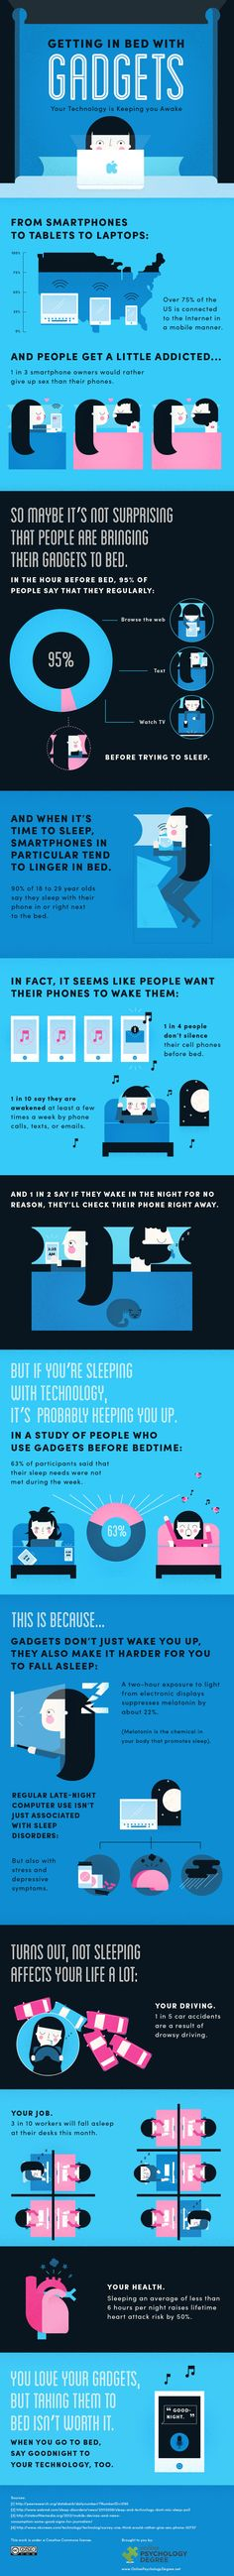 Getting In Bed With Gadgets - Your Technology Is Keeping You Awake [Infographic]